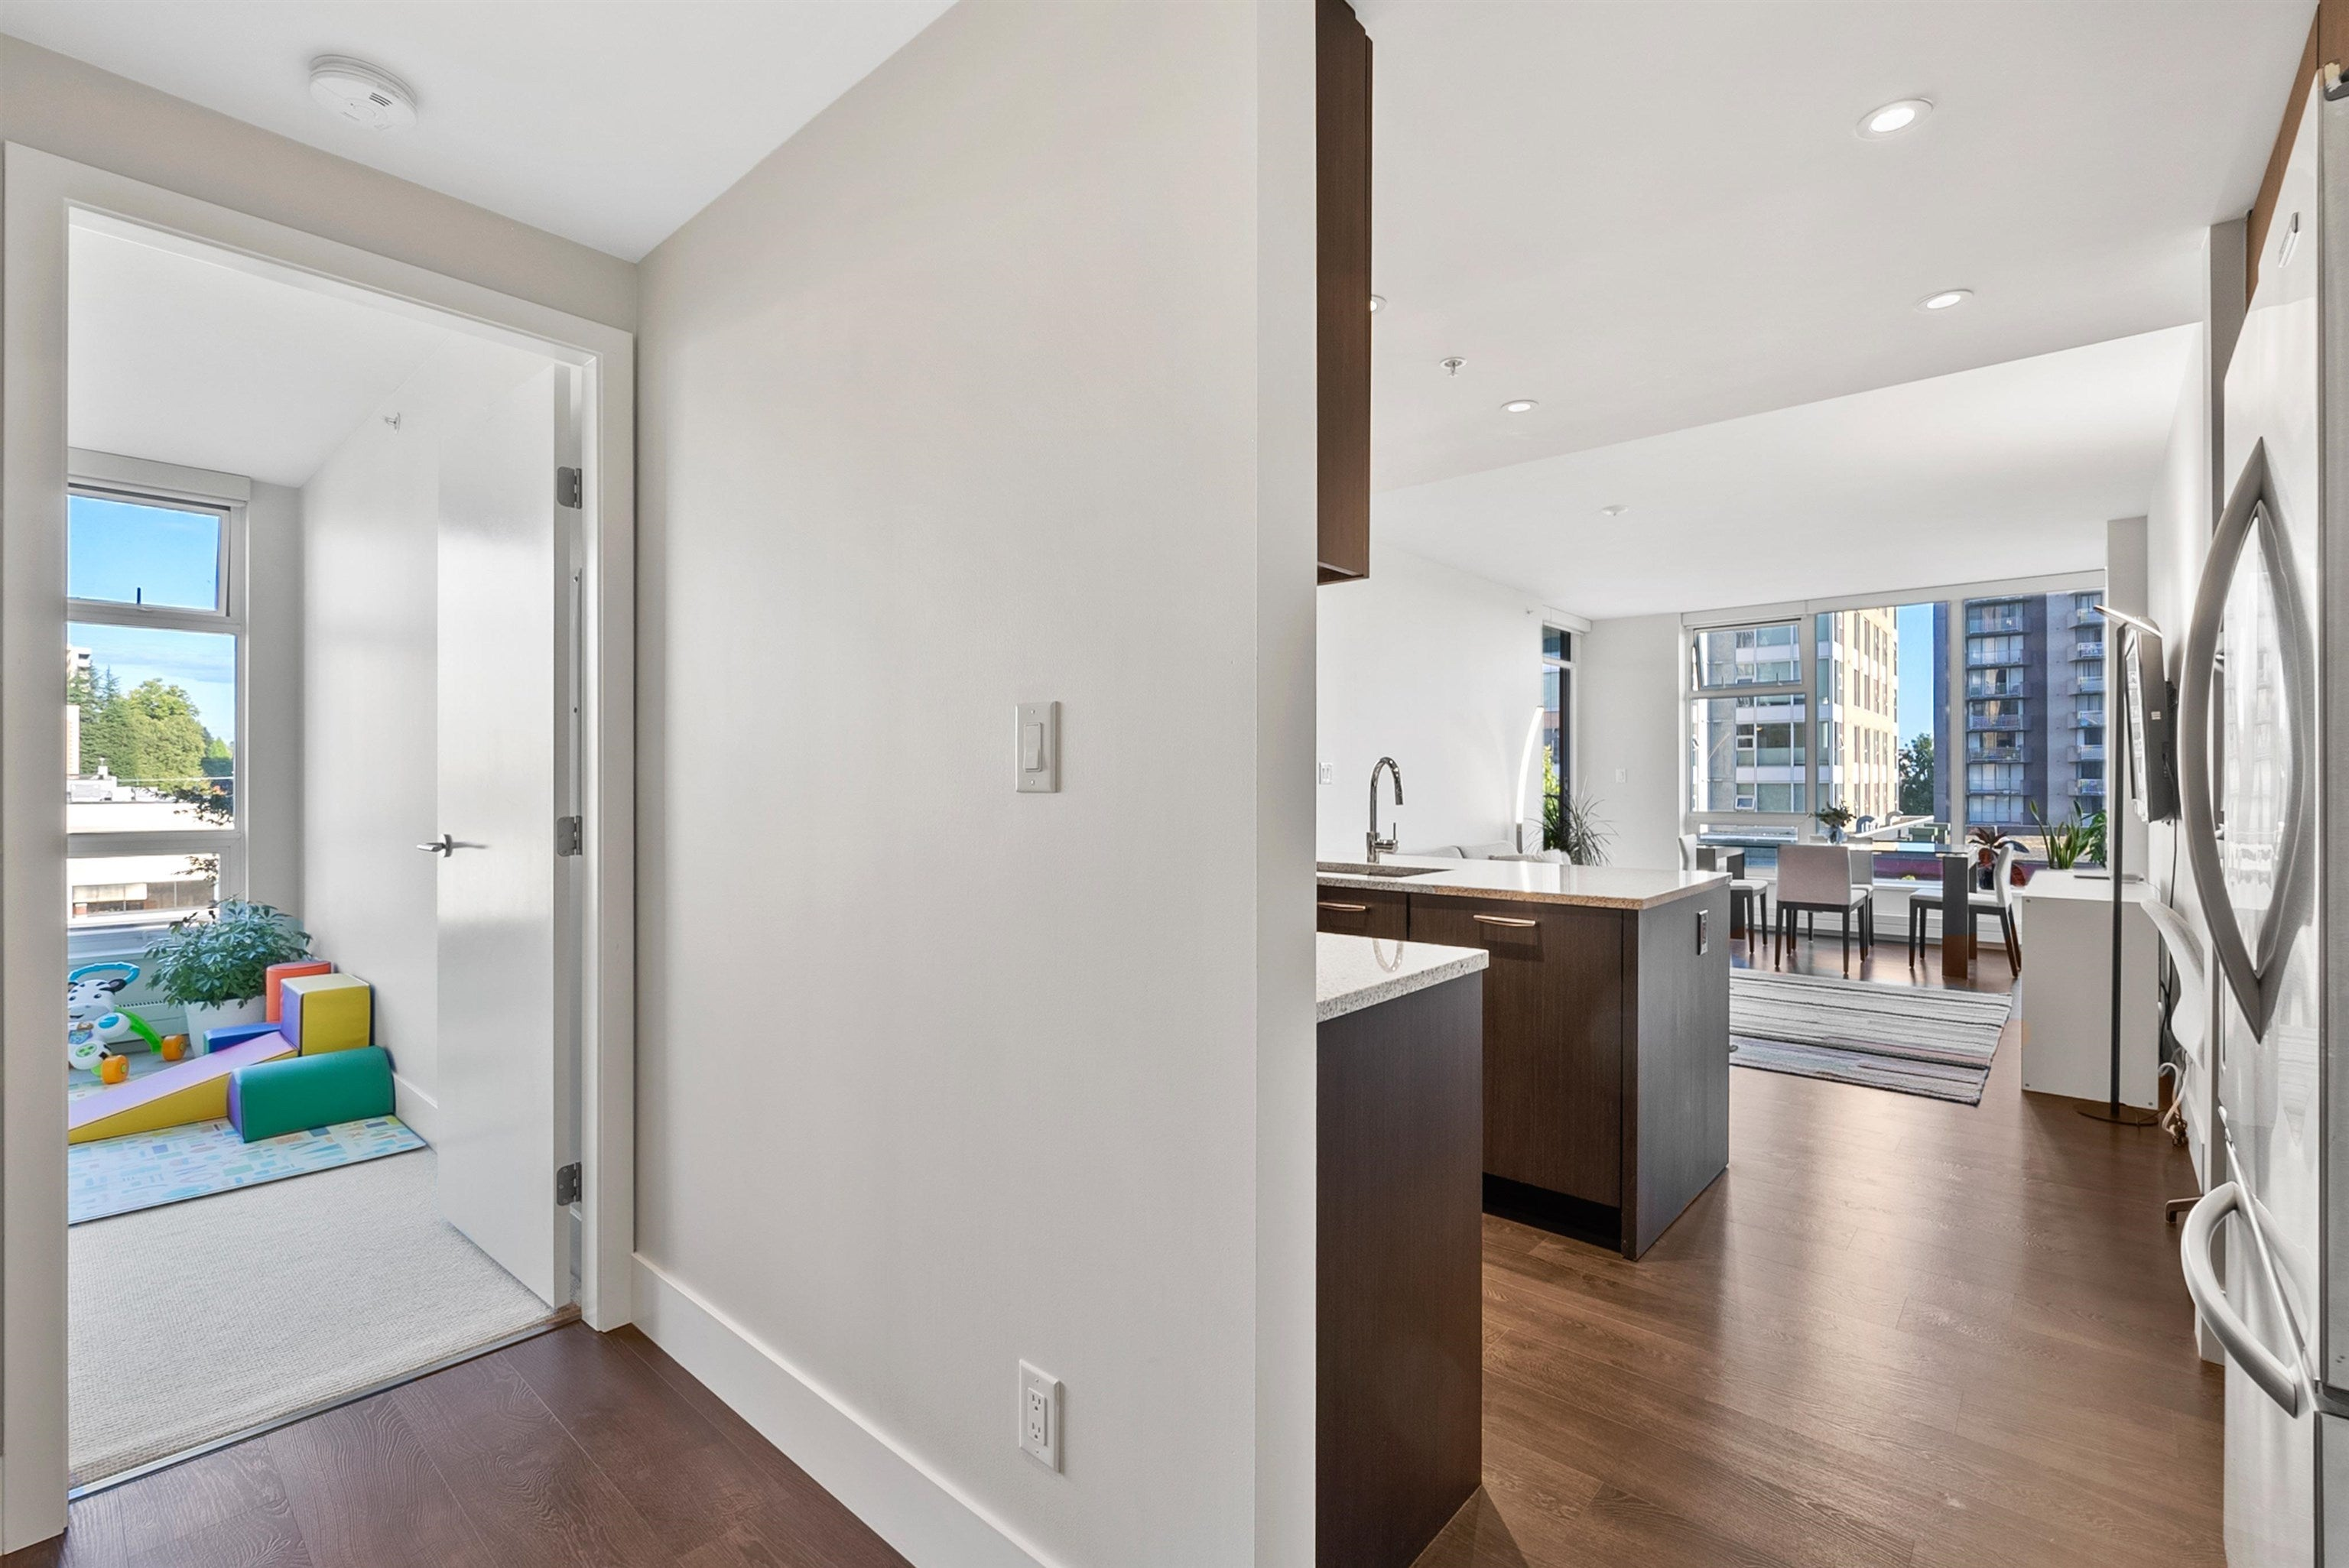 503 150 W 15TH STREET - Central Lonsdale Apartment/Condo for sale, 2 Bedrooms (R2624732) - #14